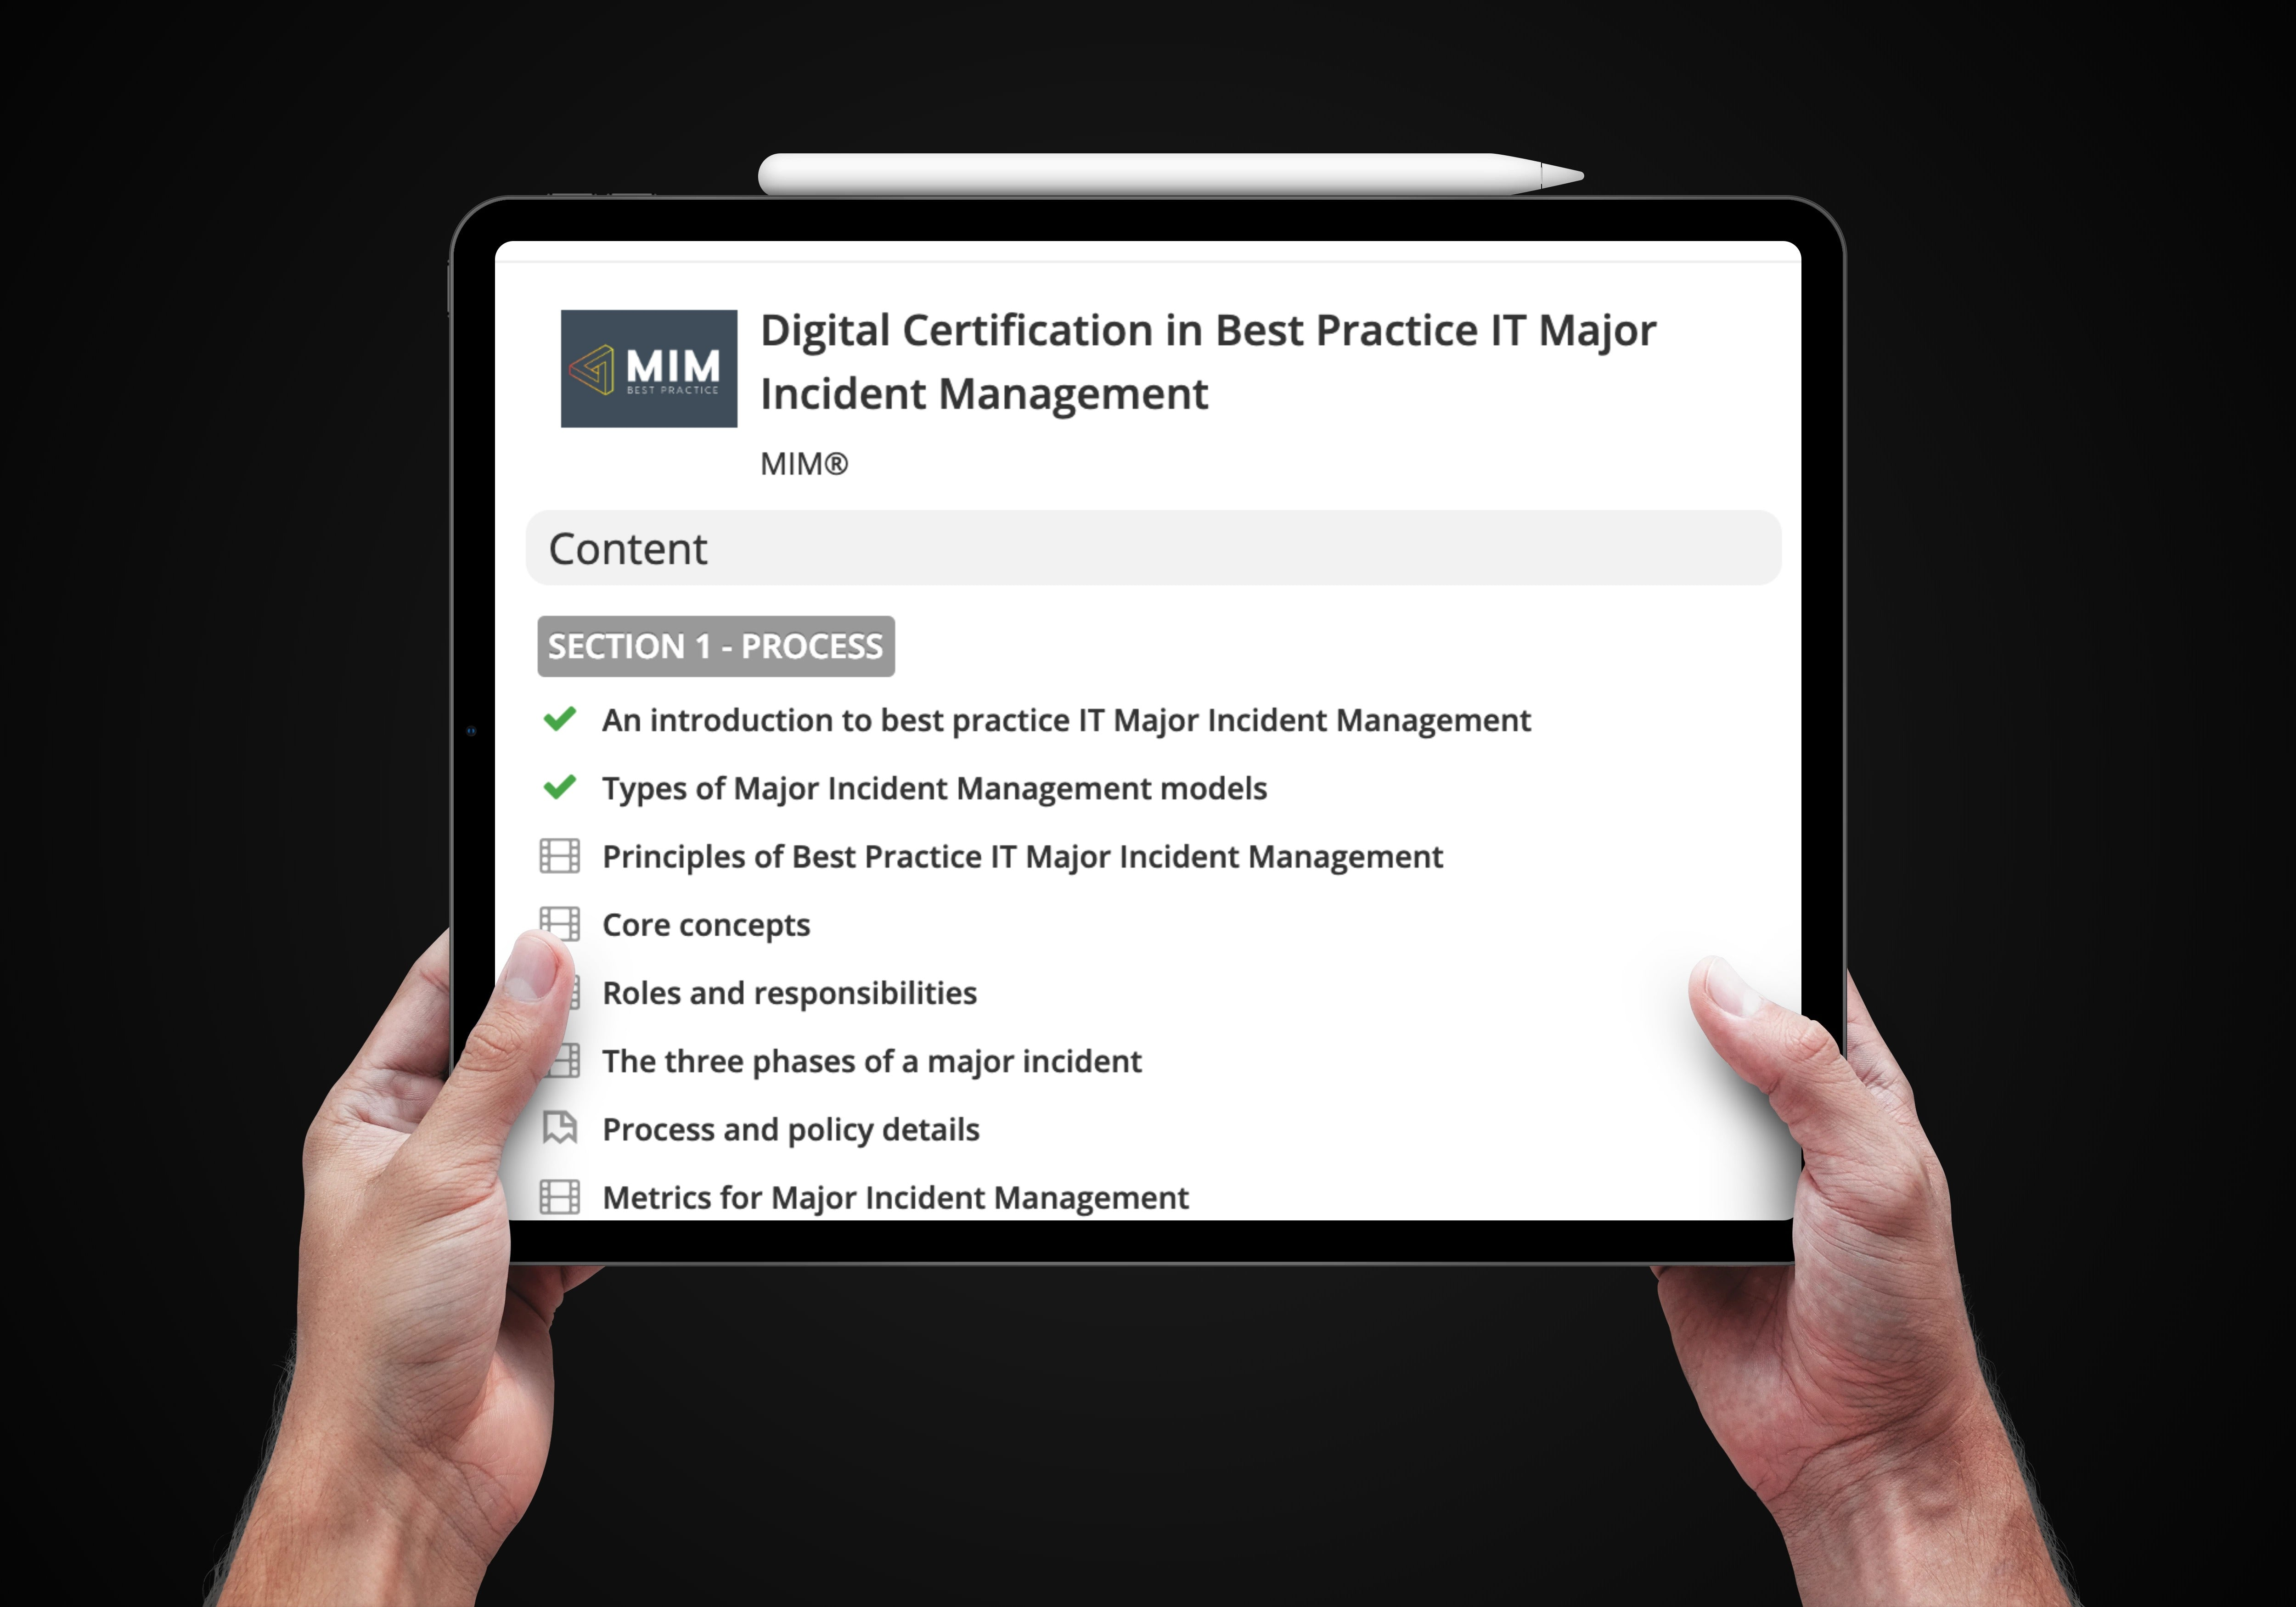 3-payment plan options for the Digital Training and Certification in Best Practice IT Major Incident Management